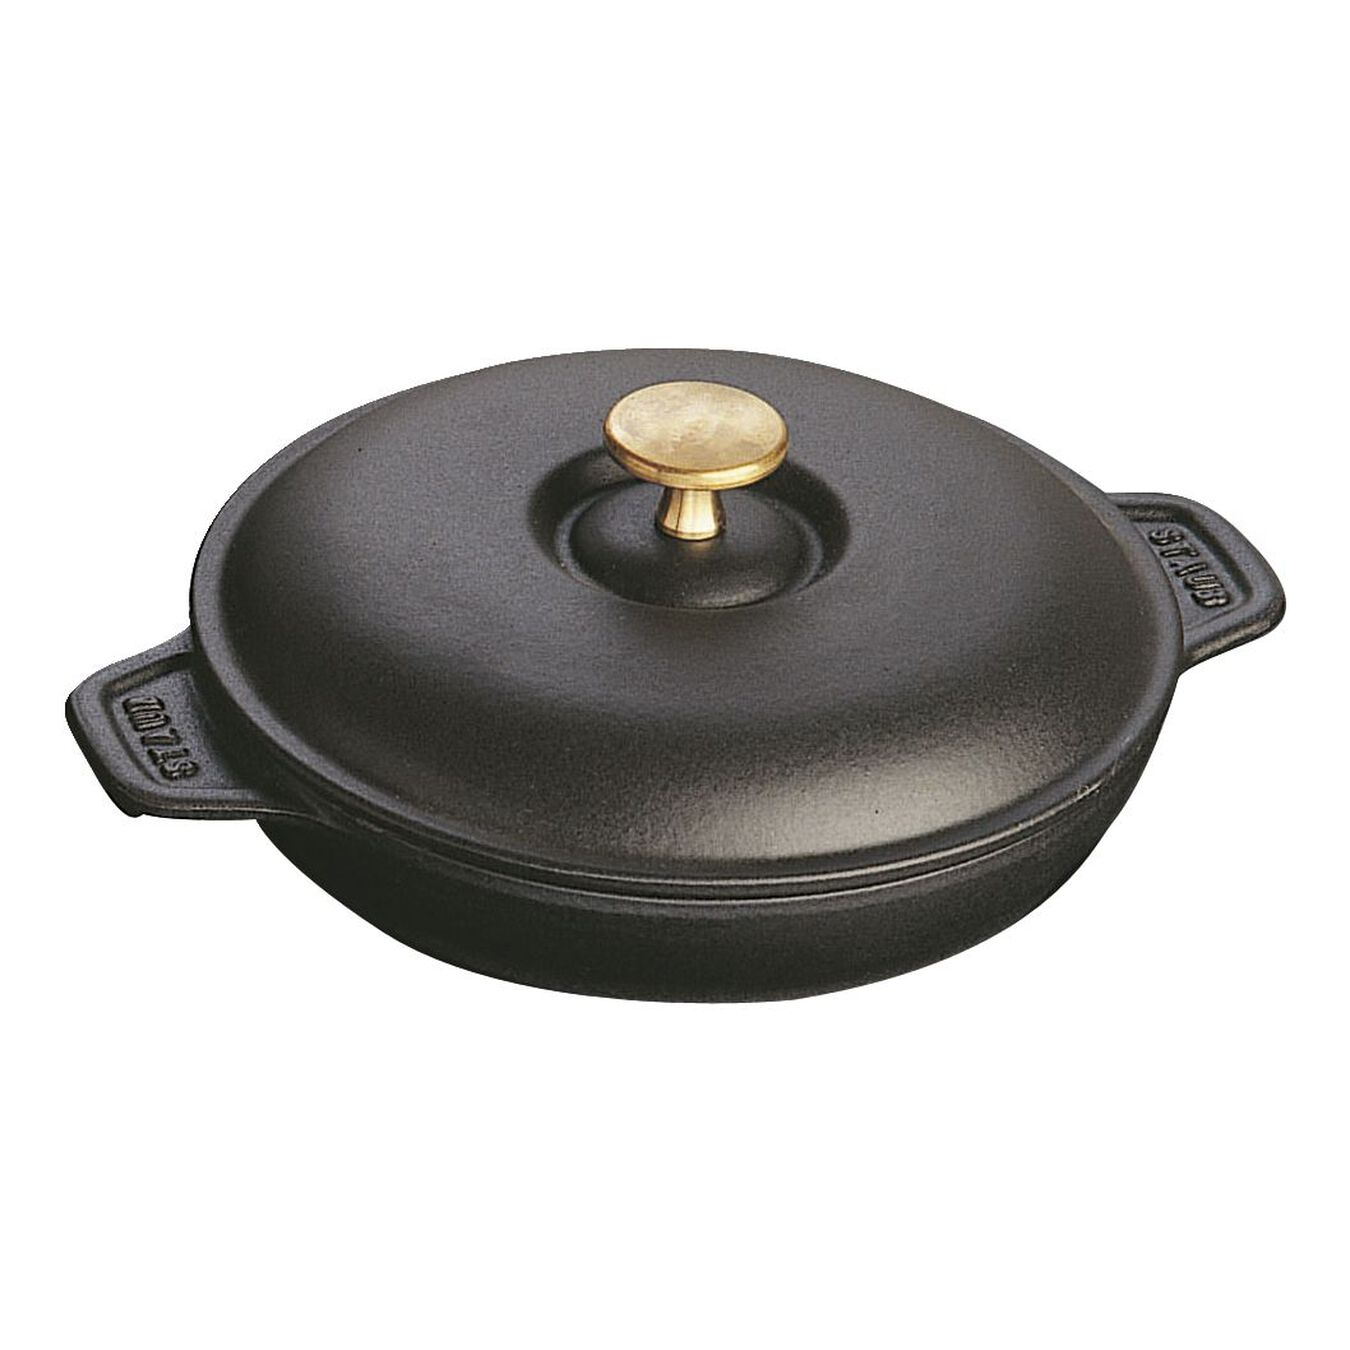 Cast iron round Oven dish with lid, Black,,large 1